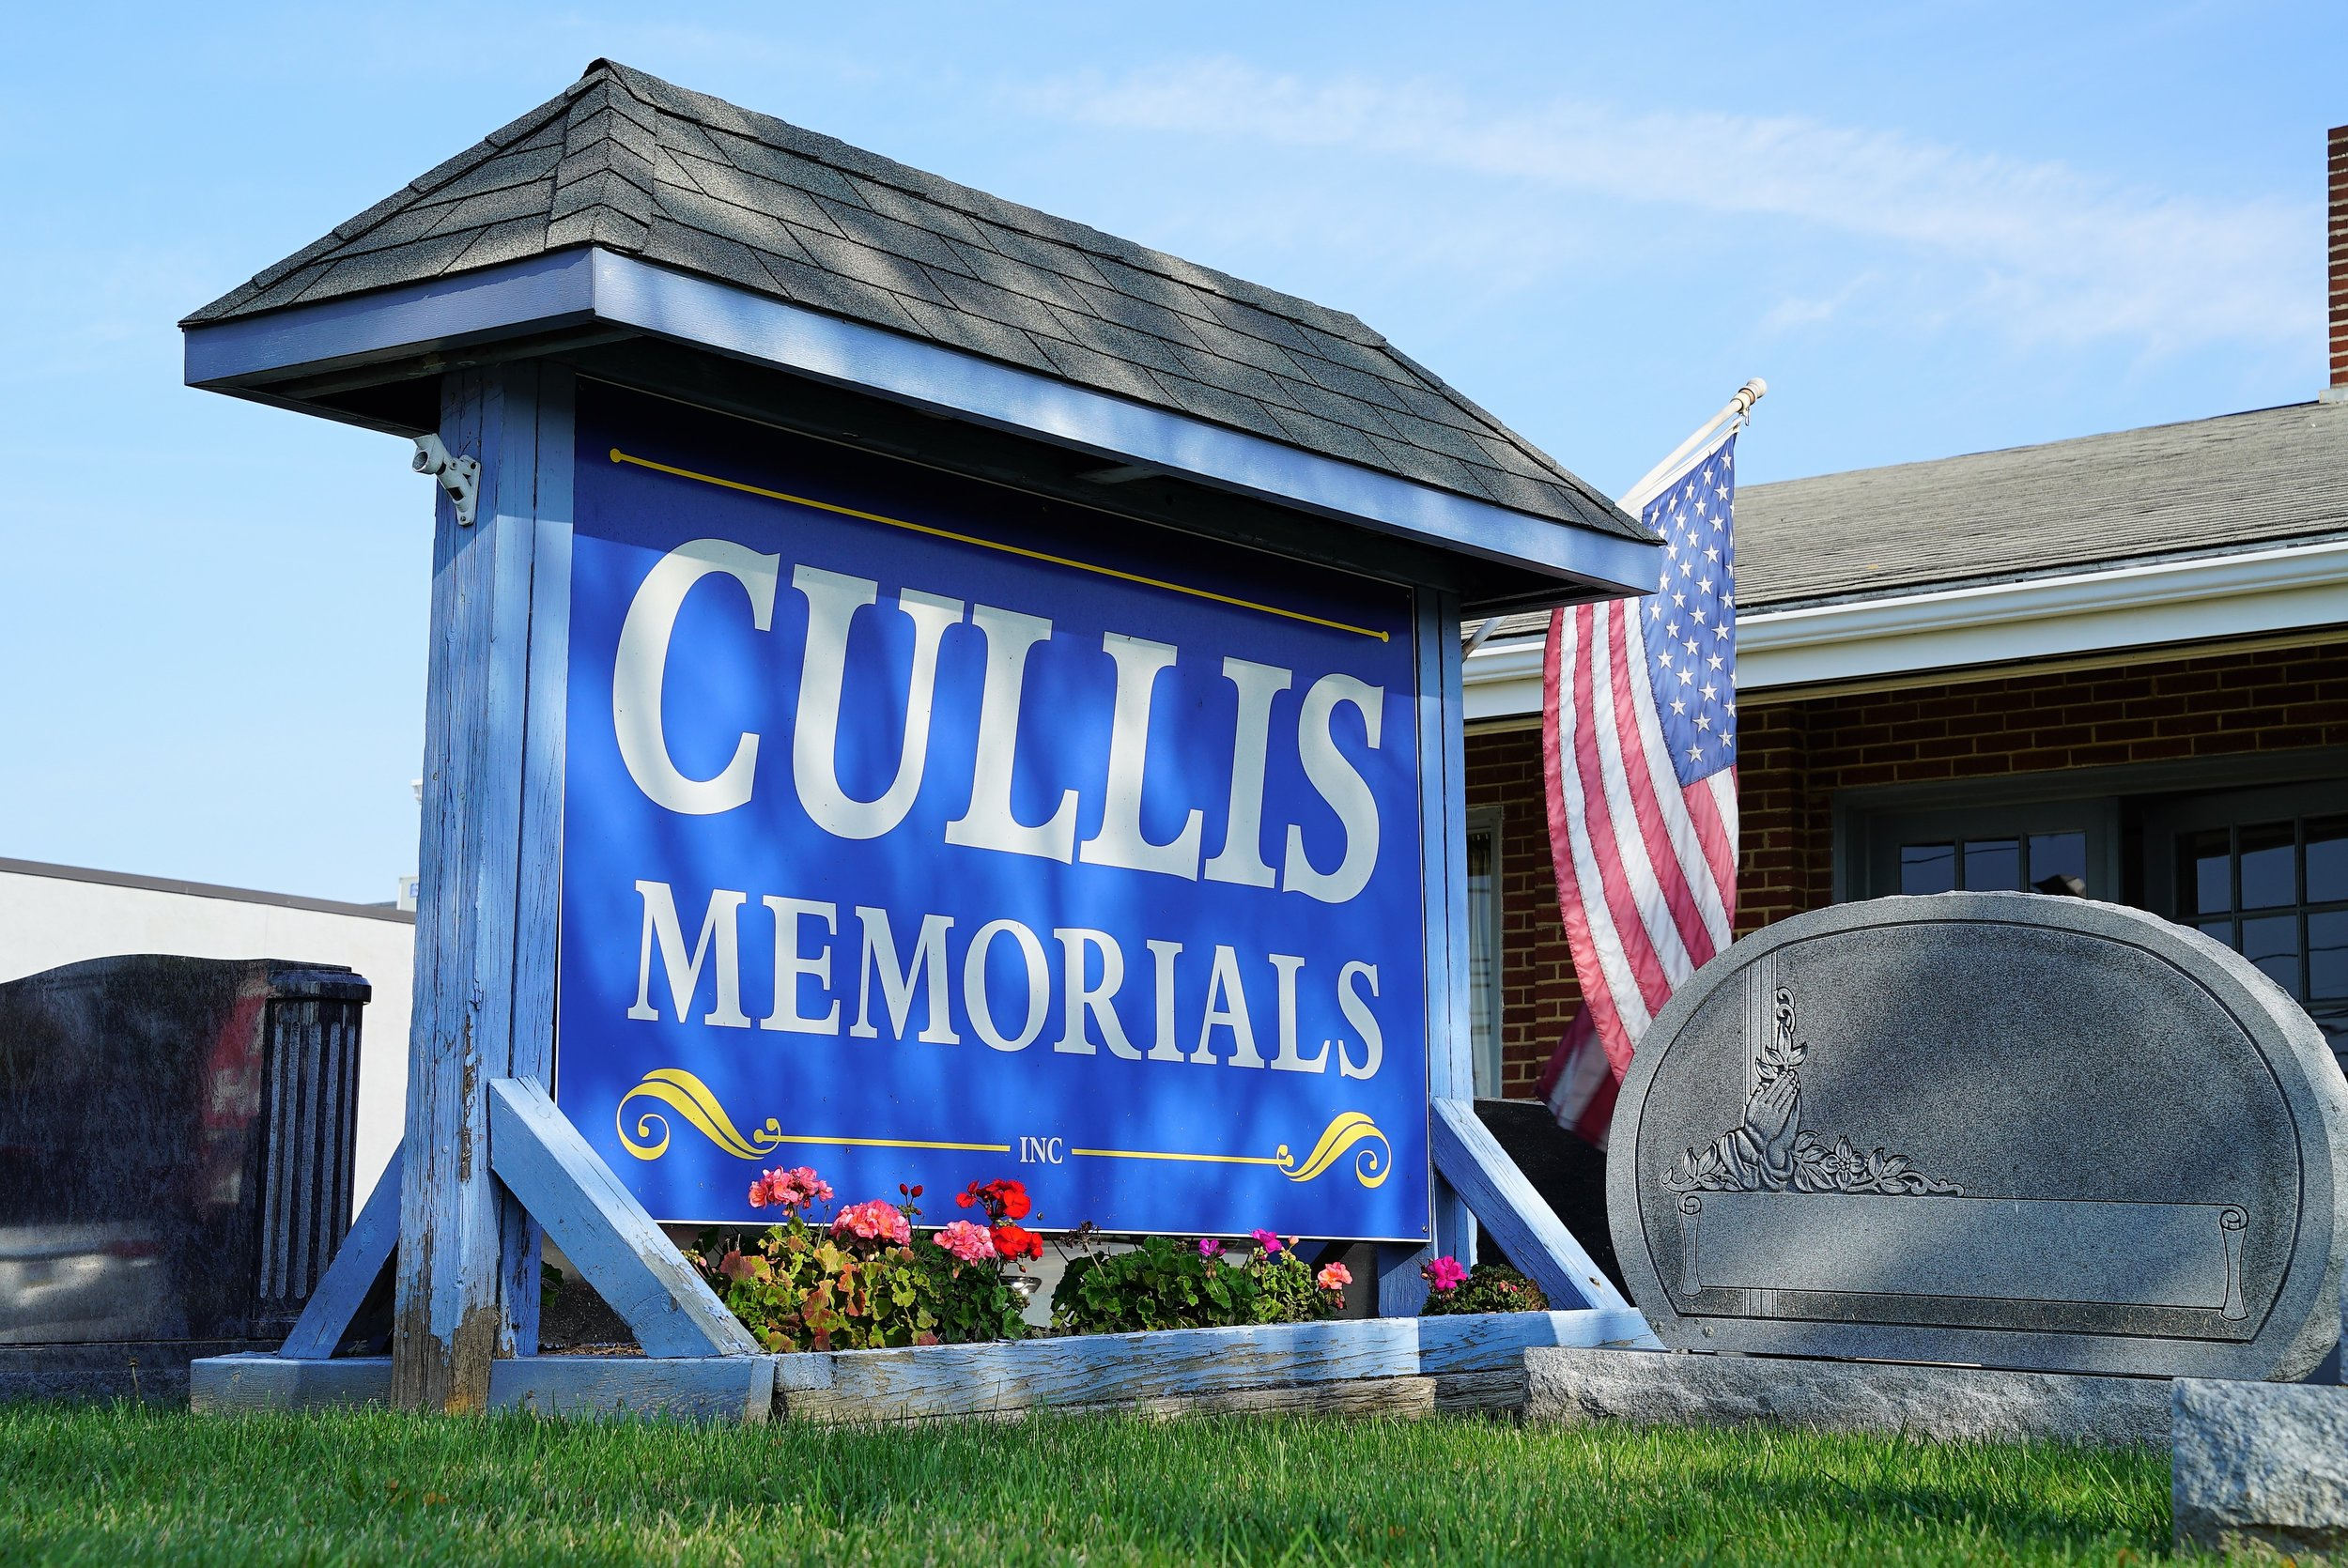 Cullis Memorials, located in Brookhaven, PA has been in business since 1875.